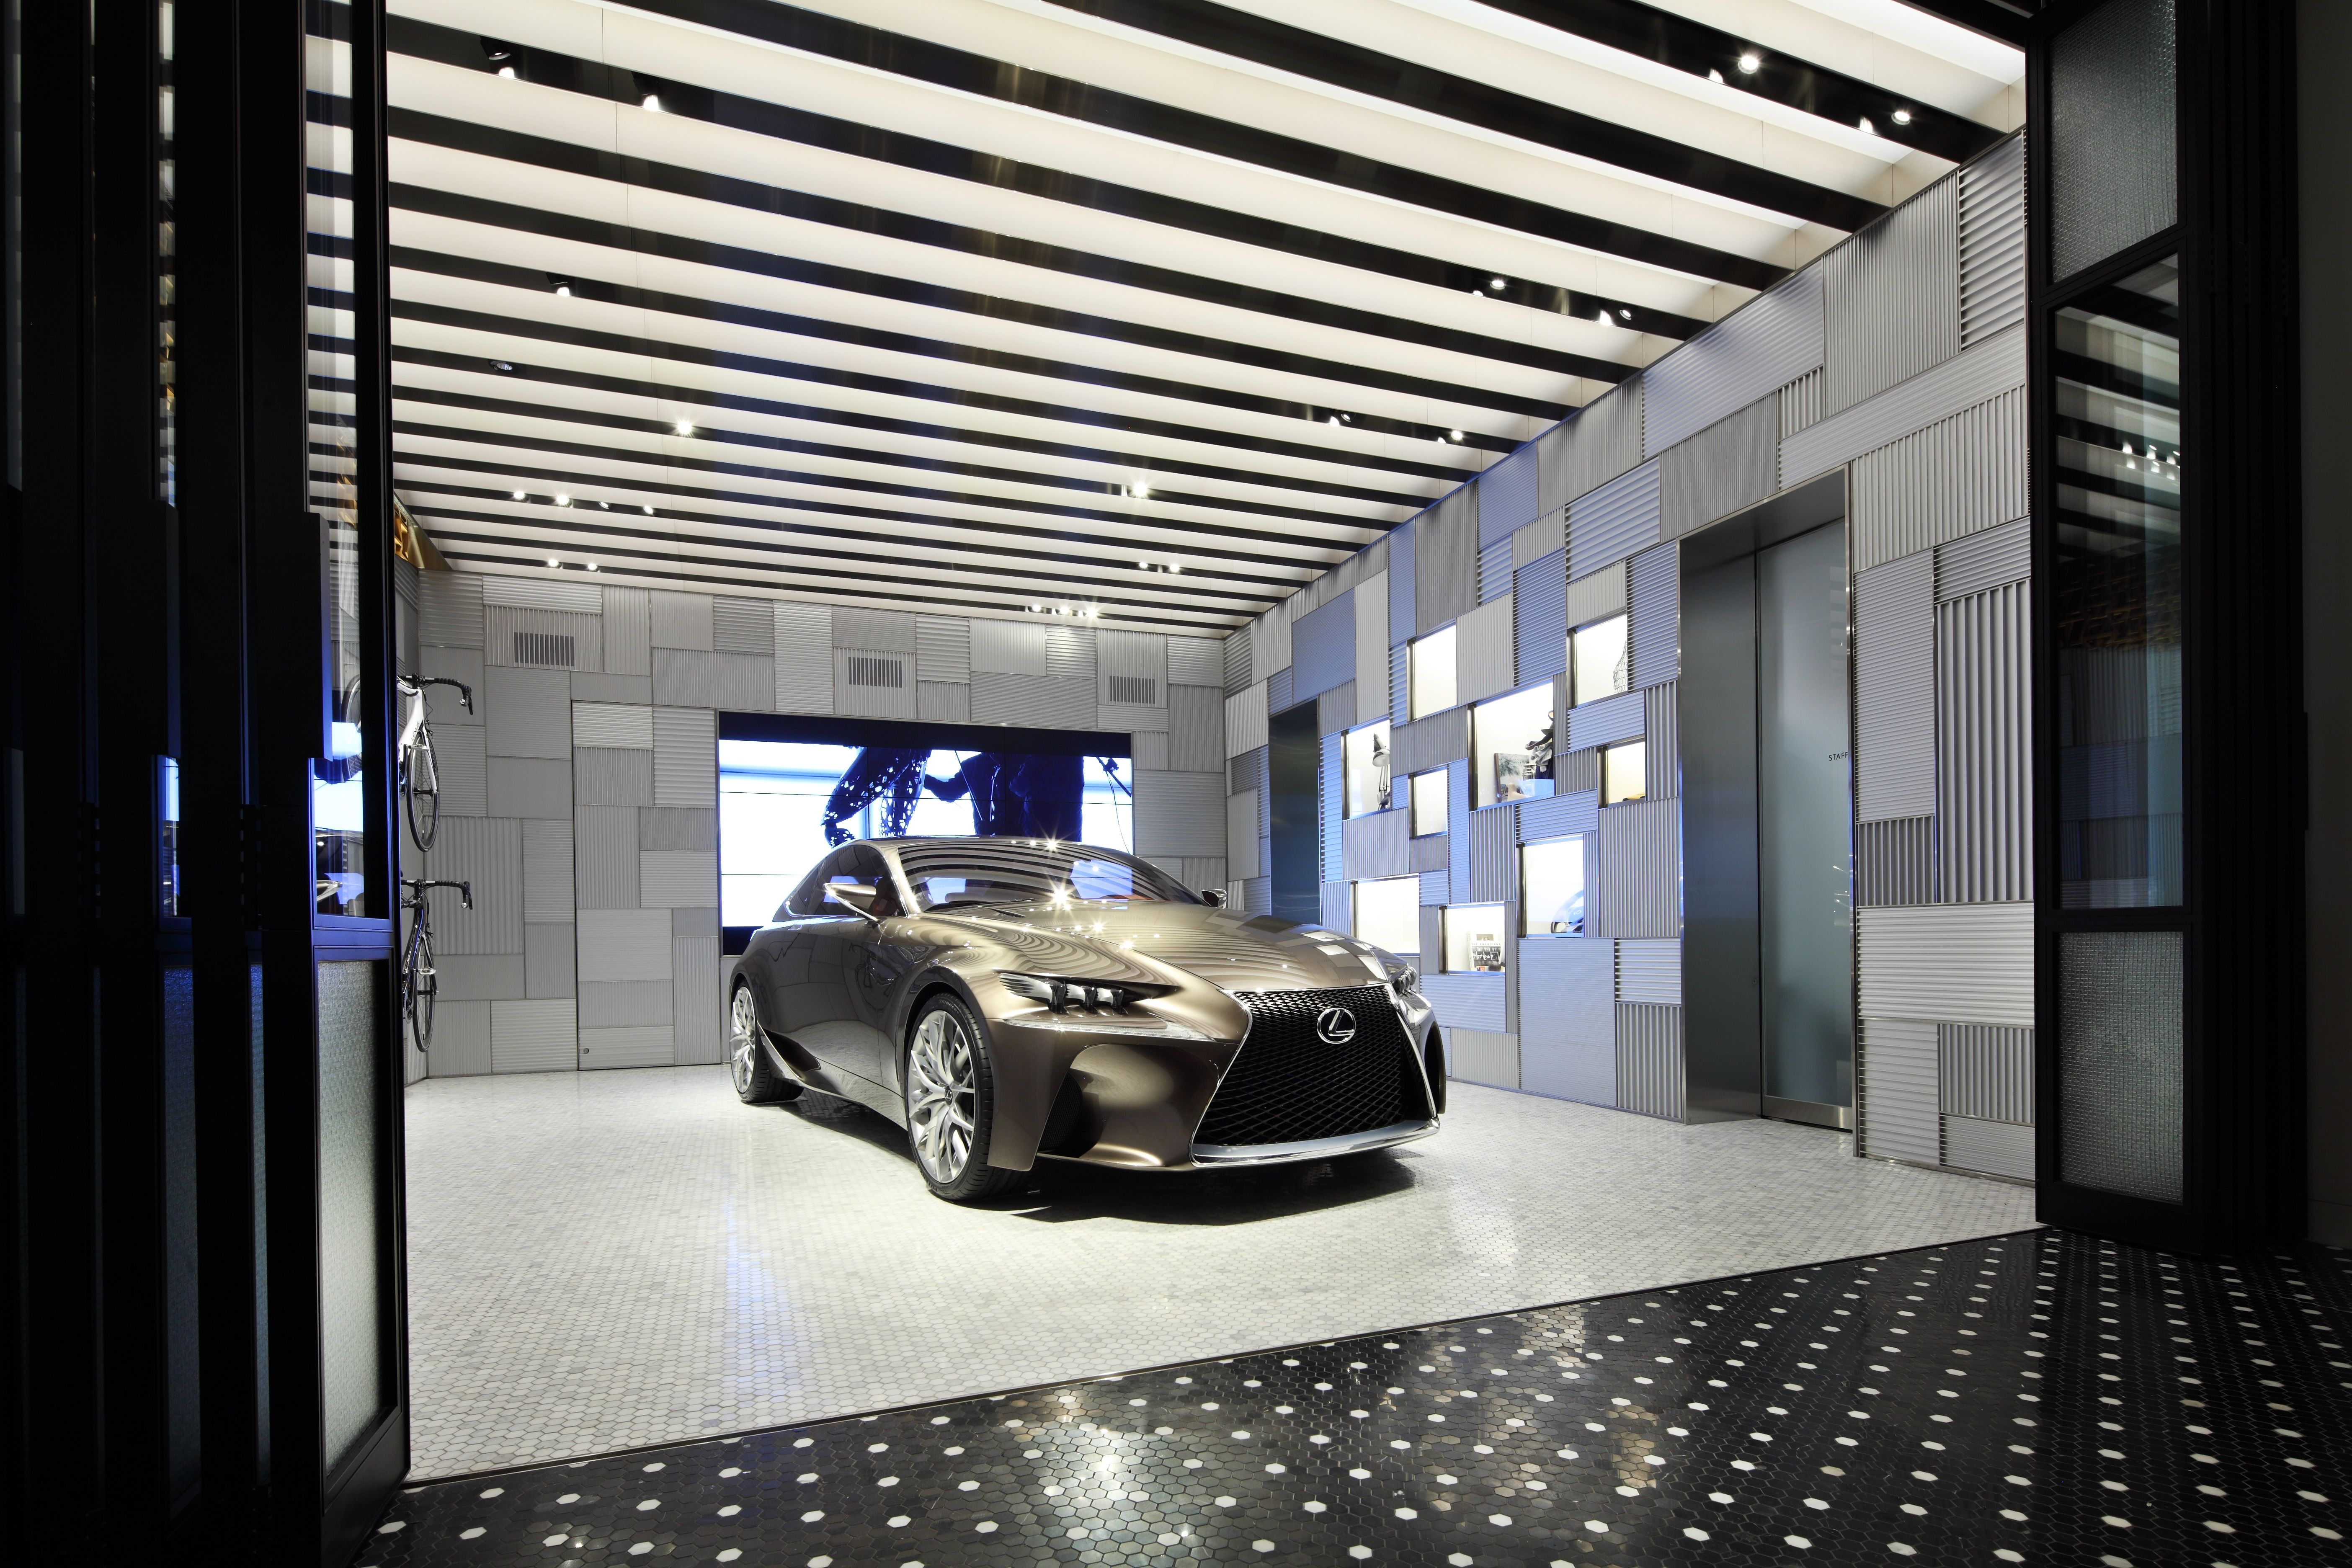 Toyota Motors Brings A New Restaurant Concept To Car And Coffee Lovers With Intersect By Lexus Set Launch In Dubai This Season